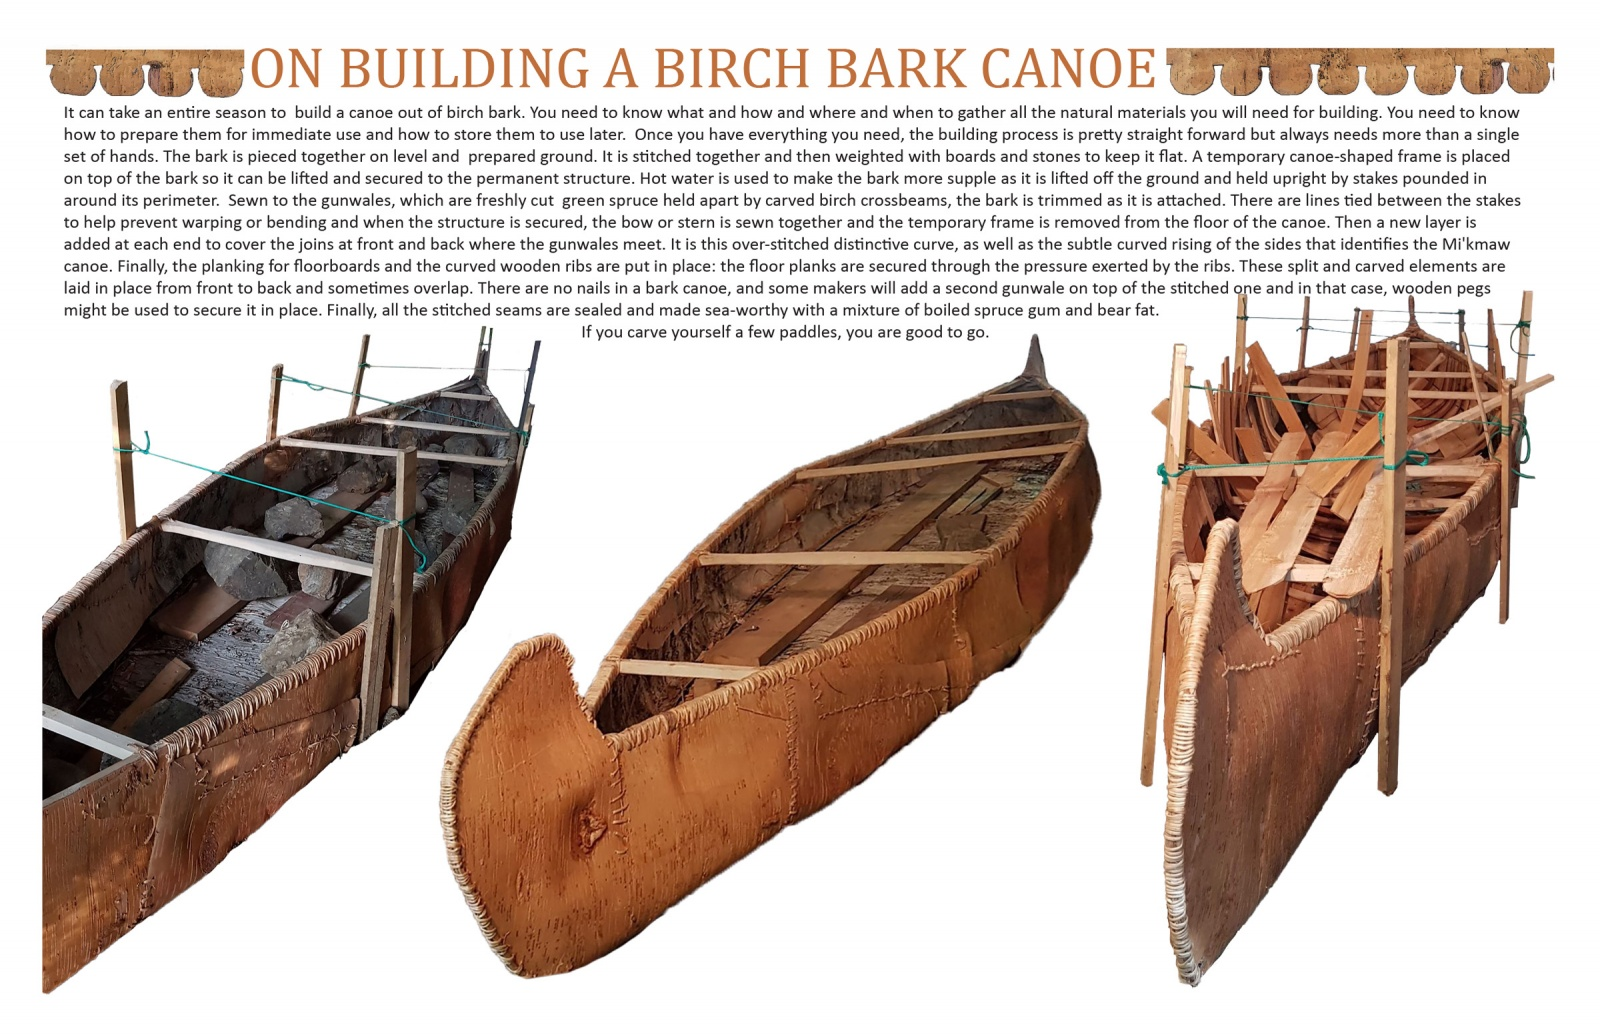 On Building a Birch Bark Canoe